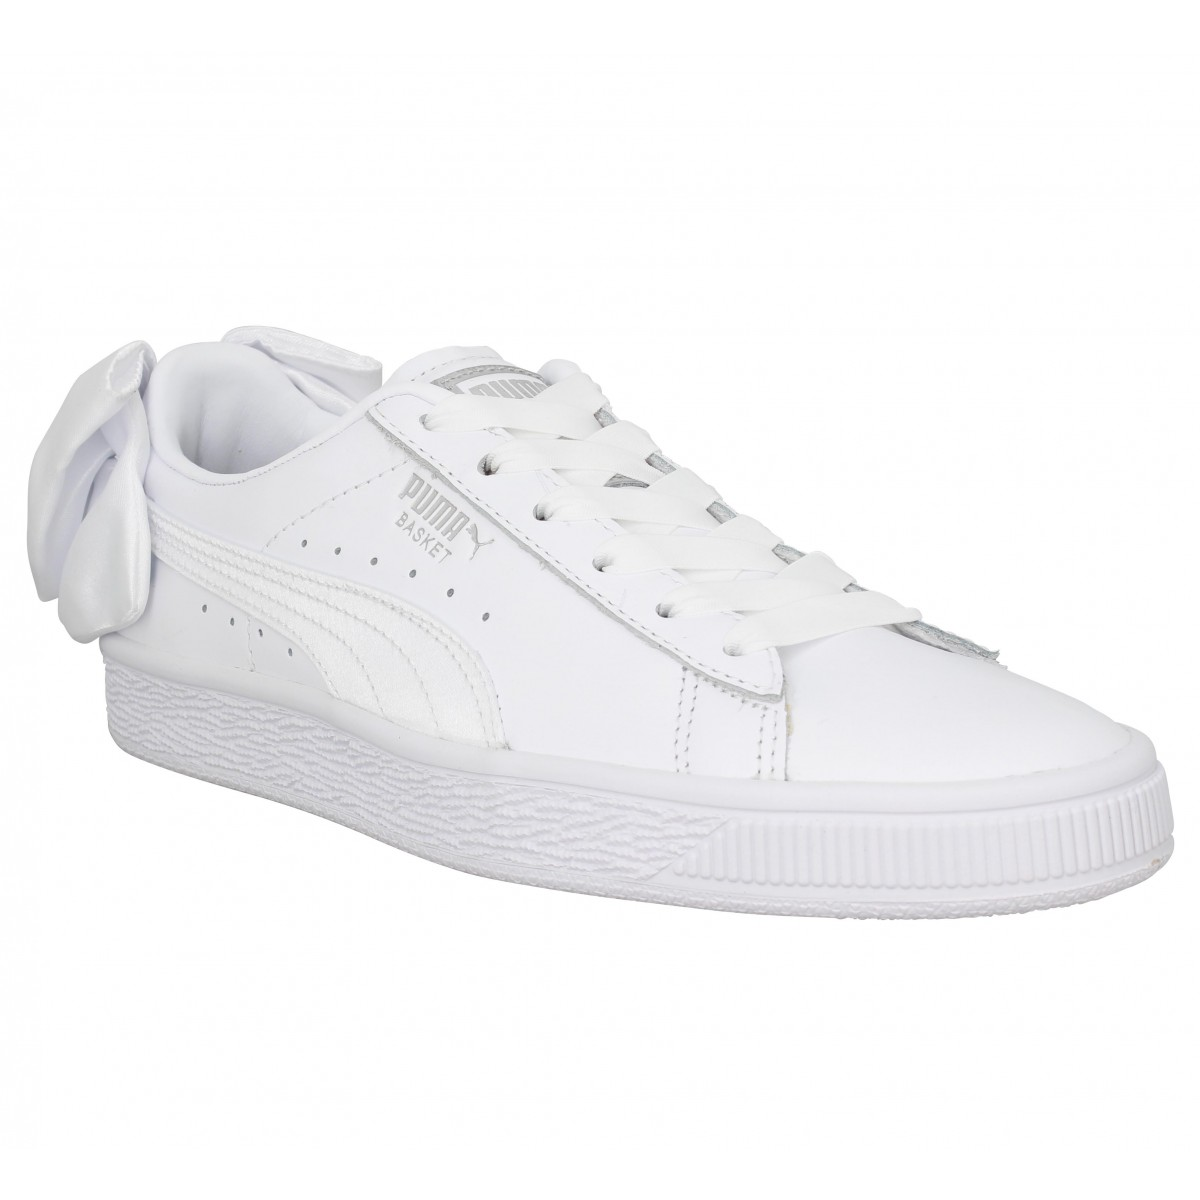 chaussures puma blanches femme